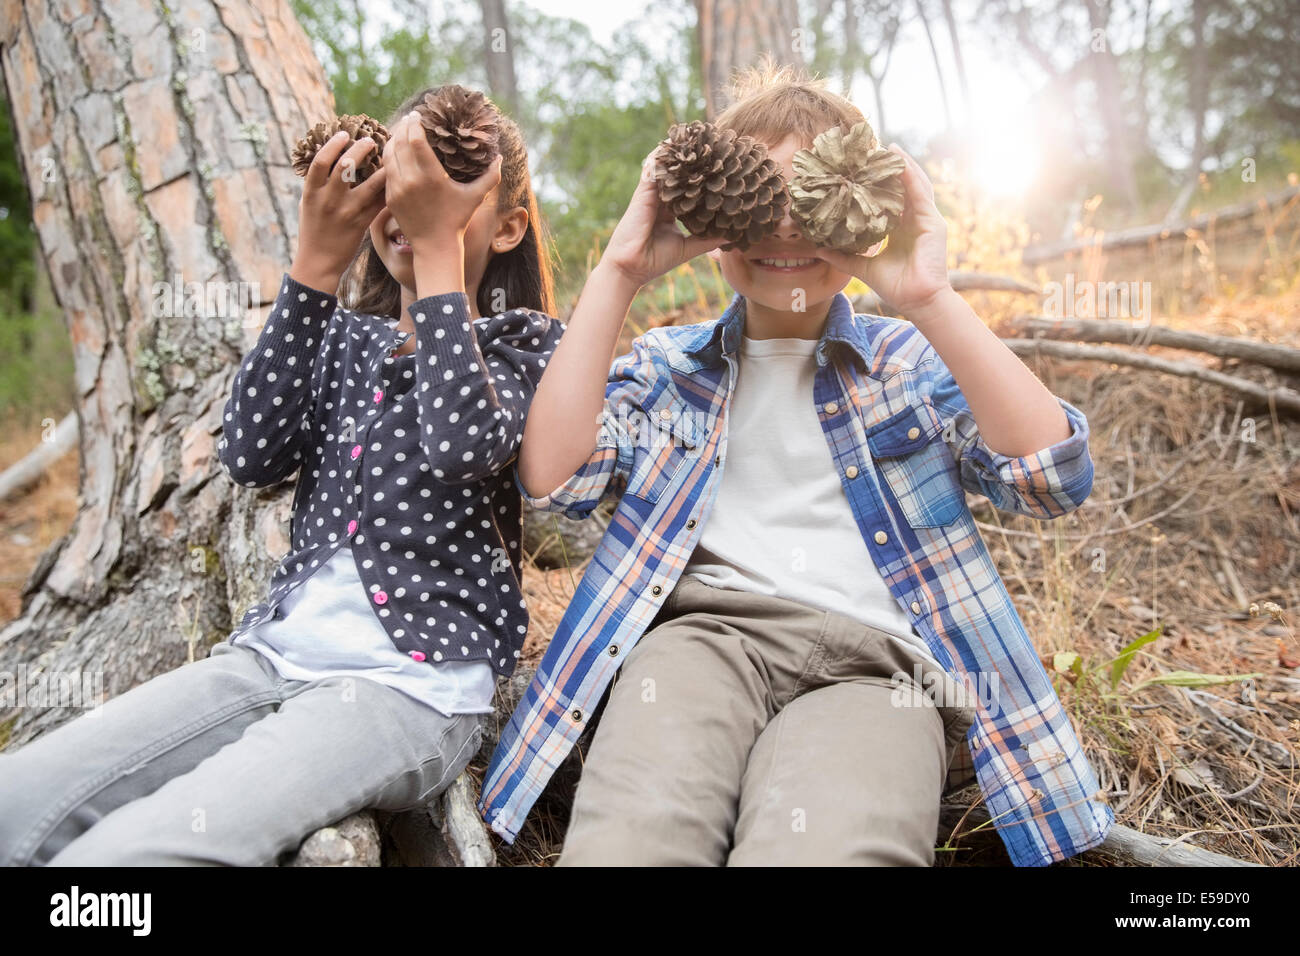 Children playing with pine cones in forest - Stock Image